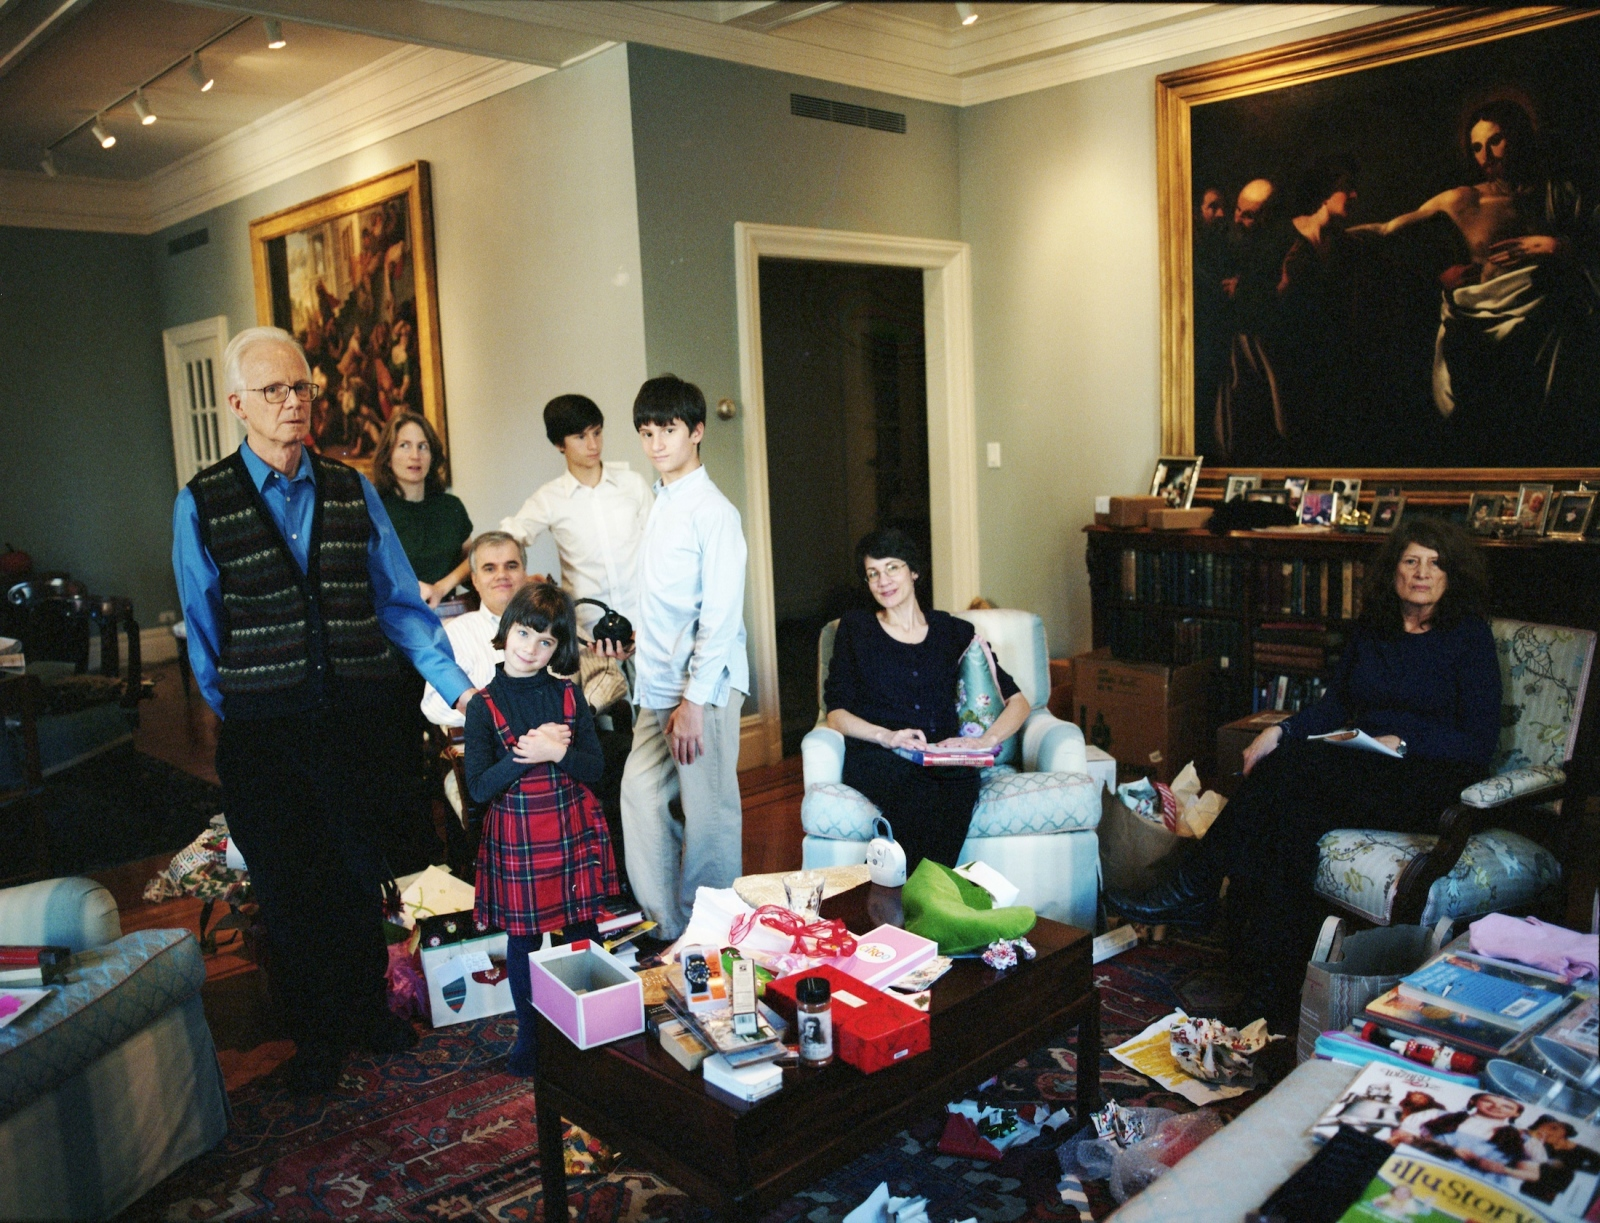 Art and Documentary Photography - Loading Christmas_at_Auntie_Gay_s__NYC_2011_copy.jpg